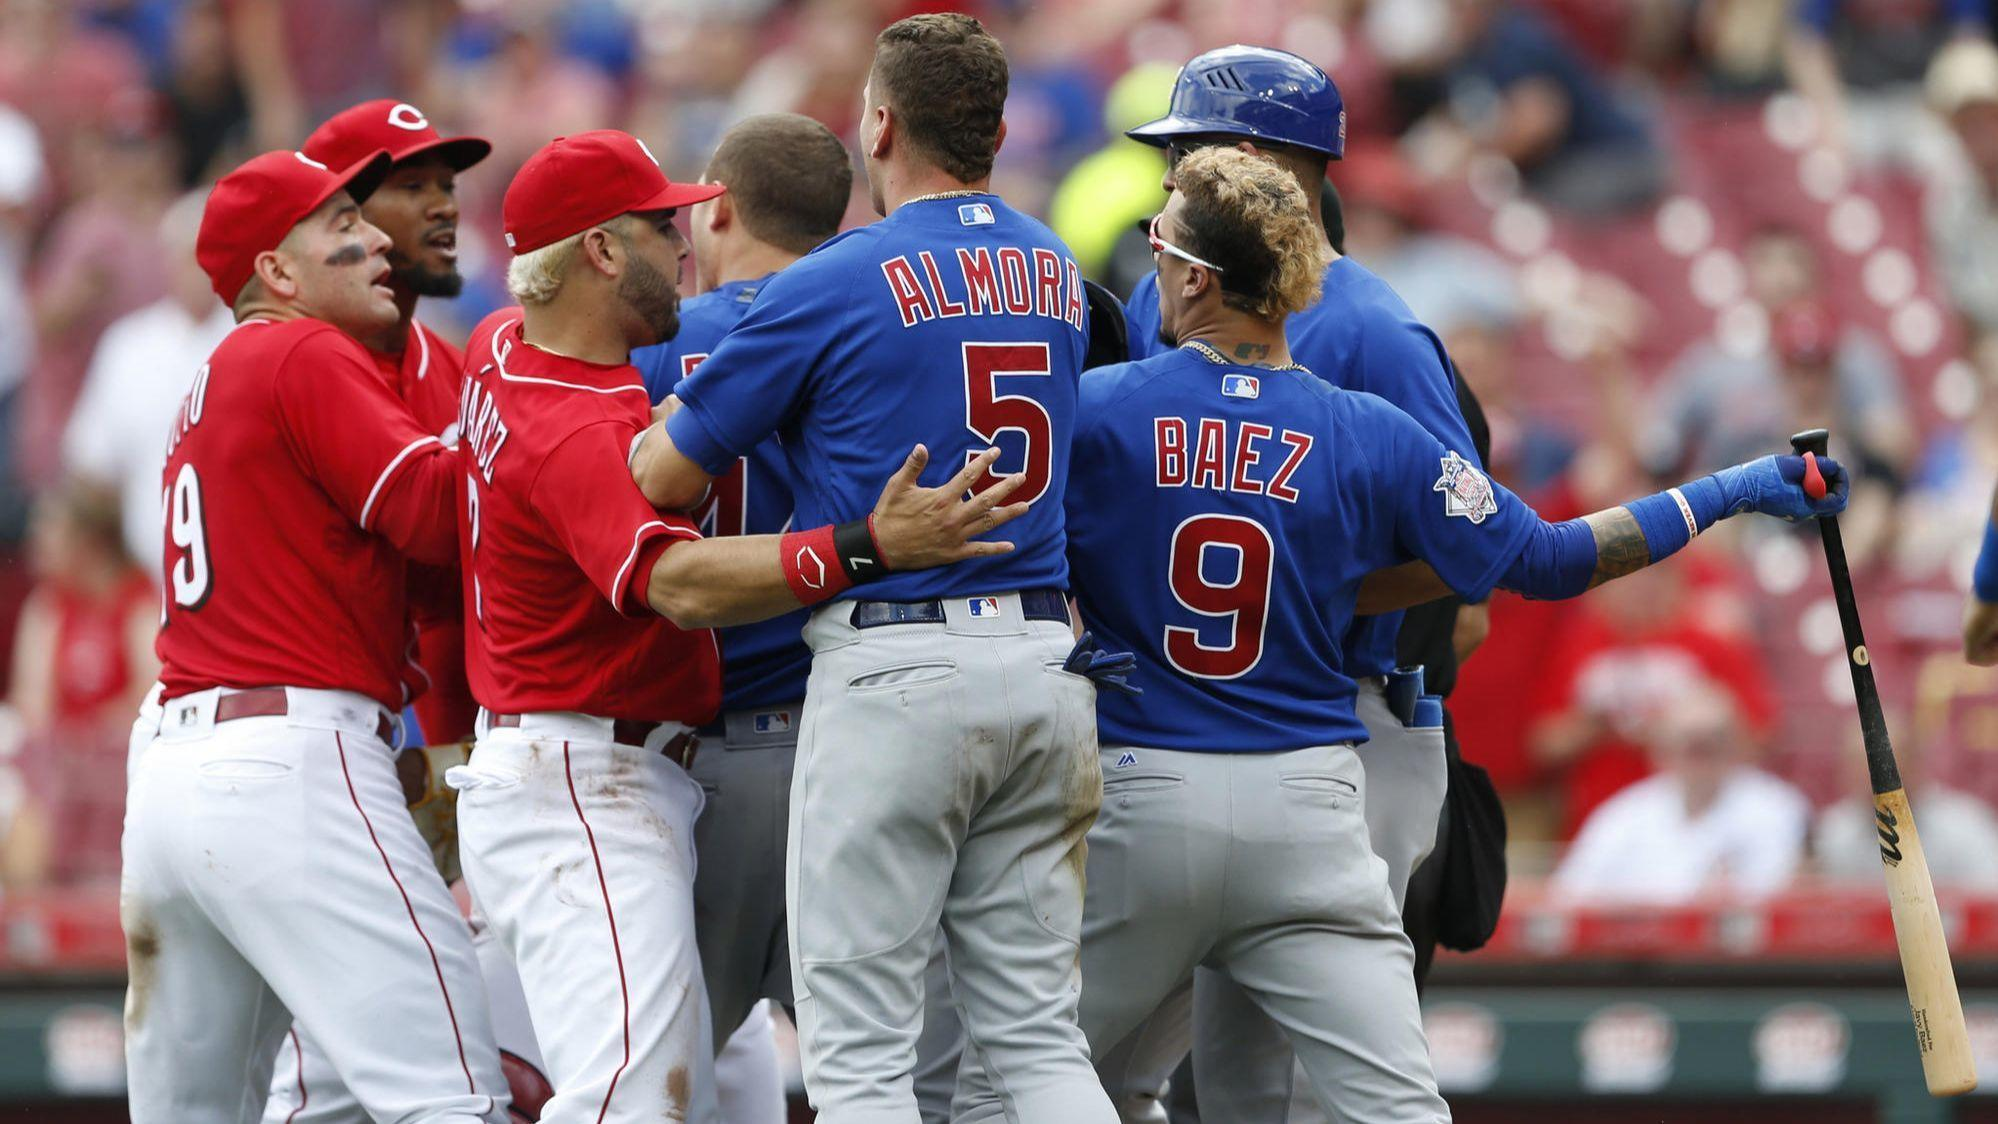 Ct-spt-cubs-reds-game1-20180519